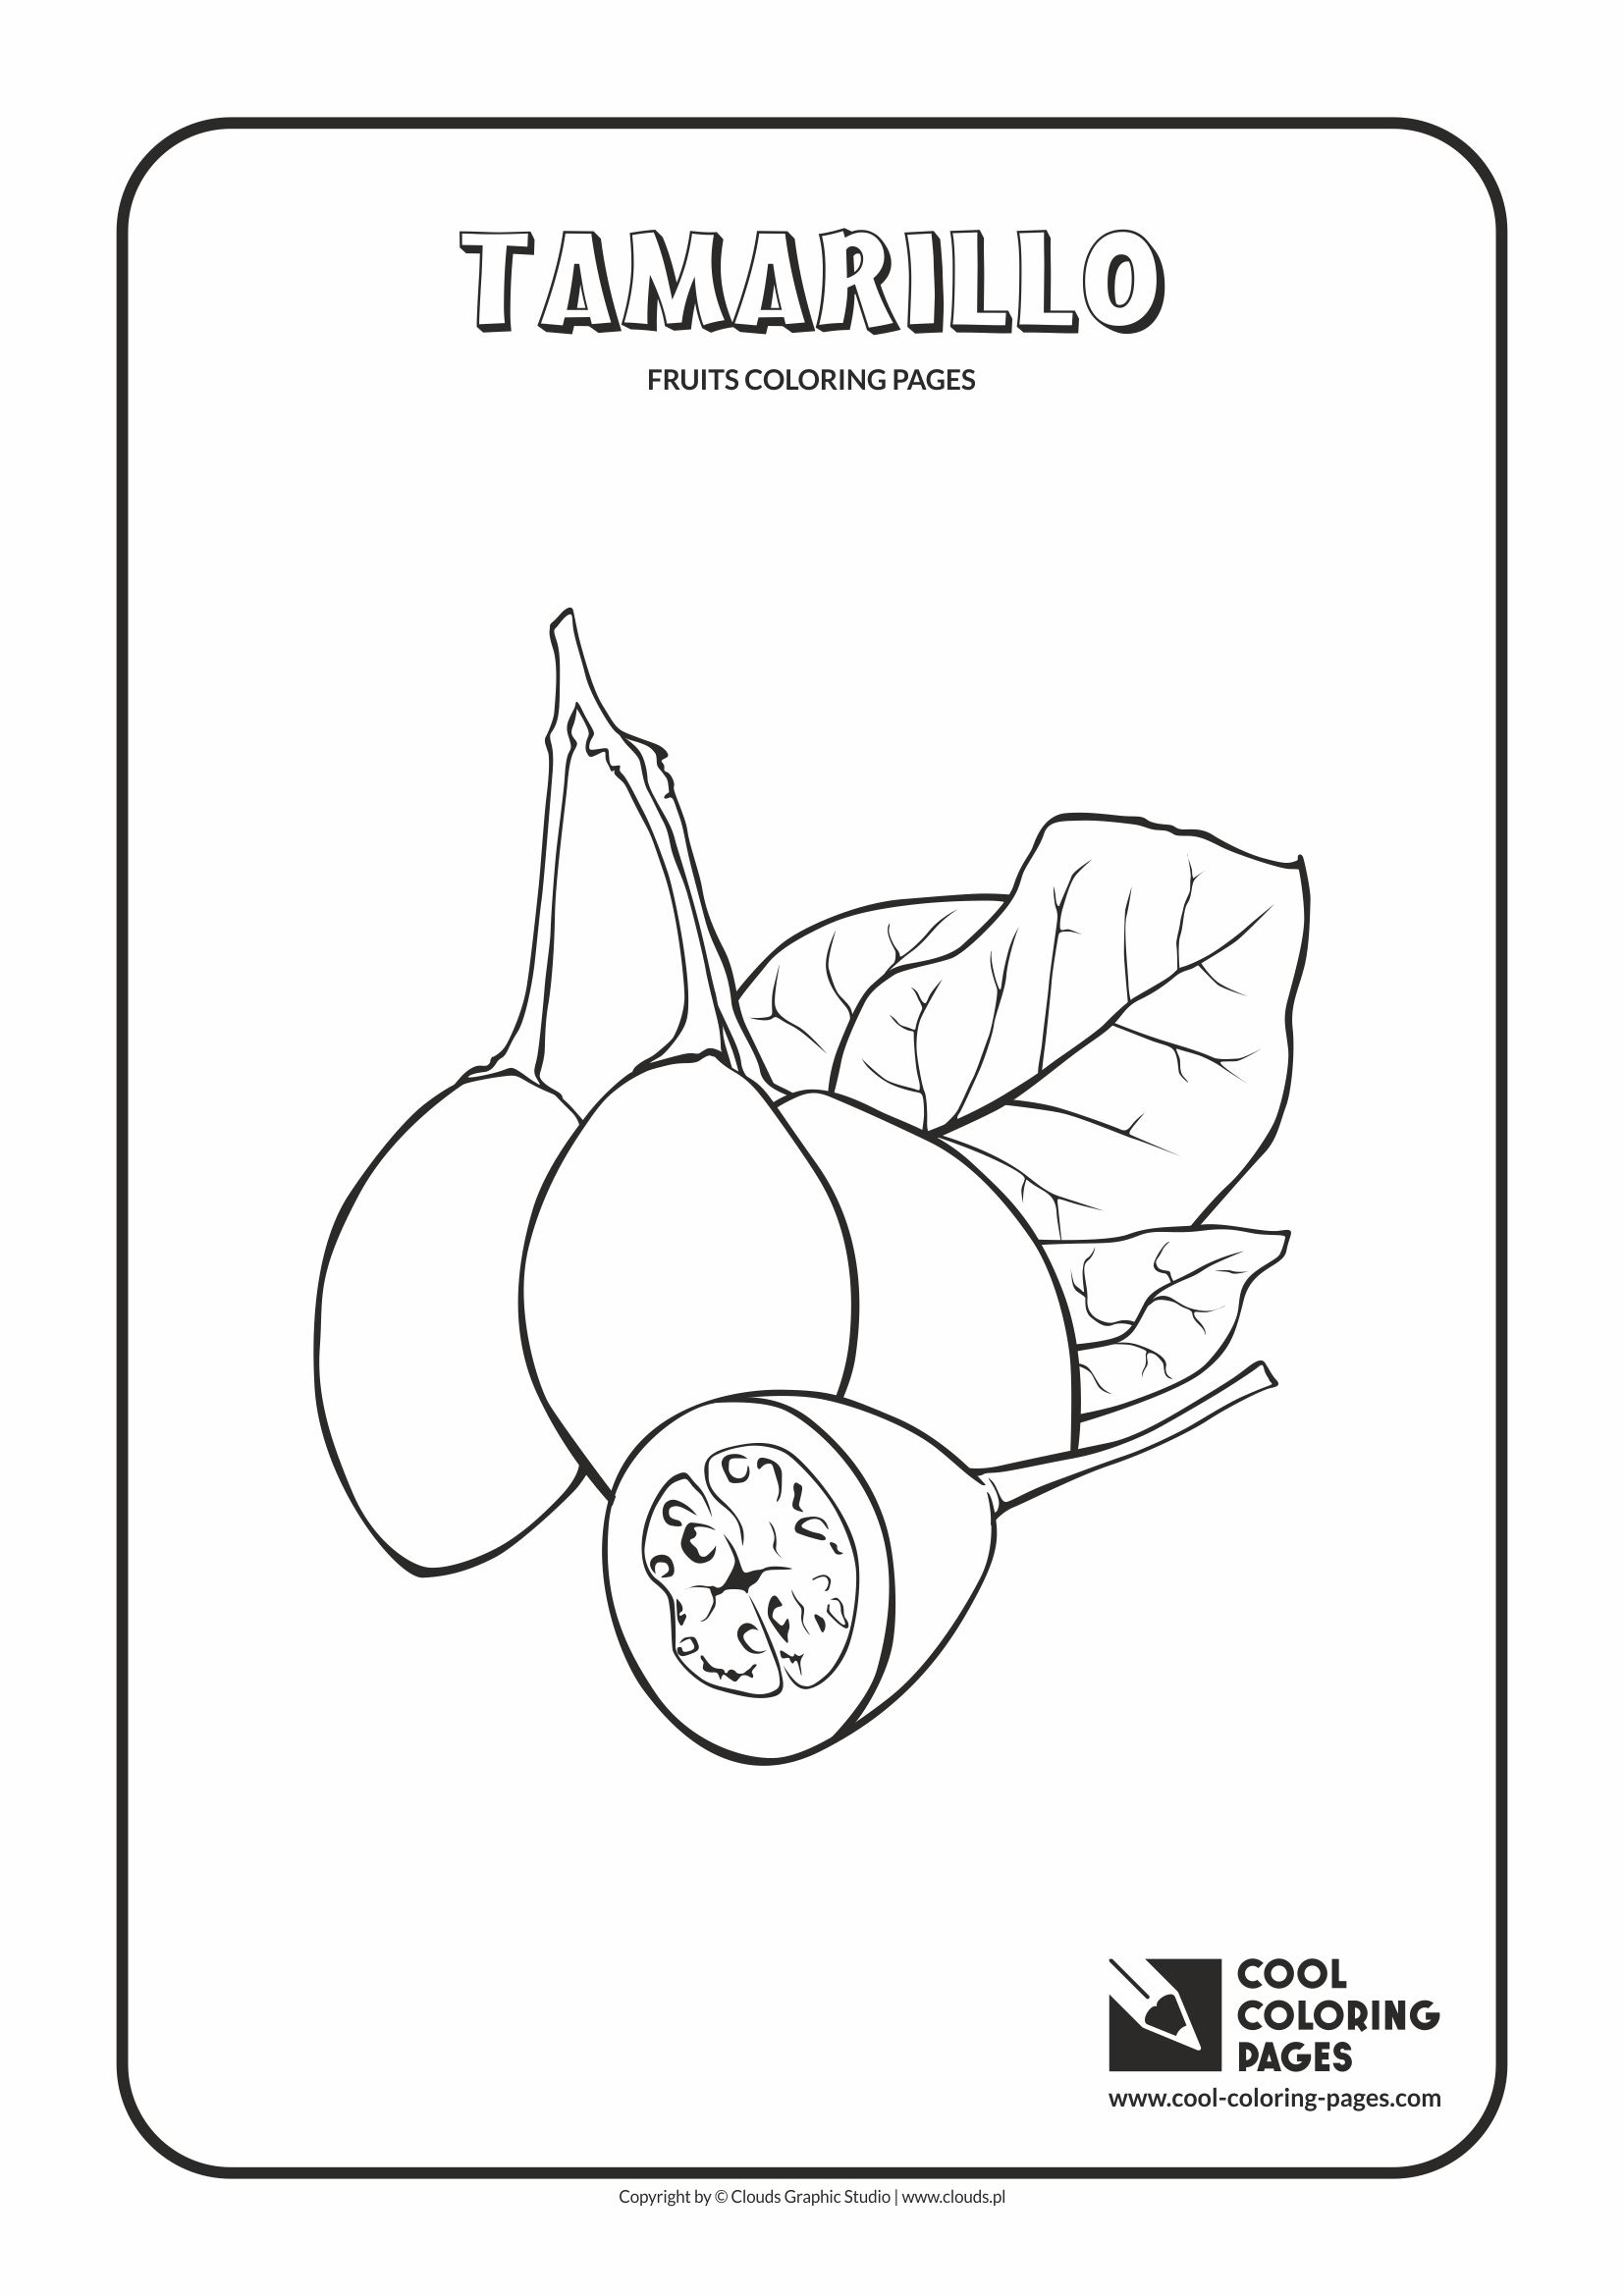 Cool Coloring Pages - Plants / Tamarillo / Coloring page with tamarillo